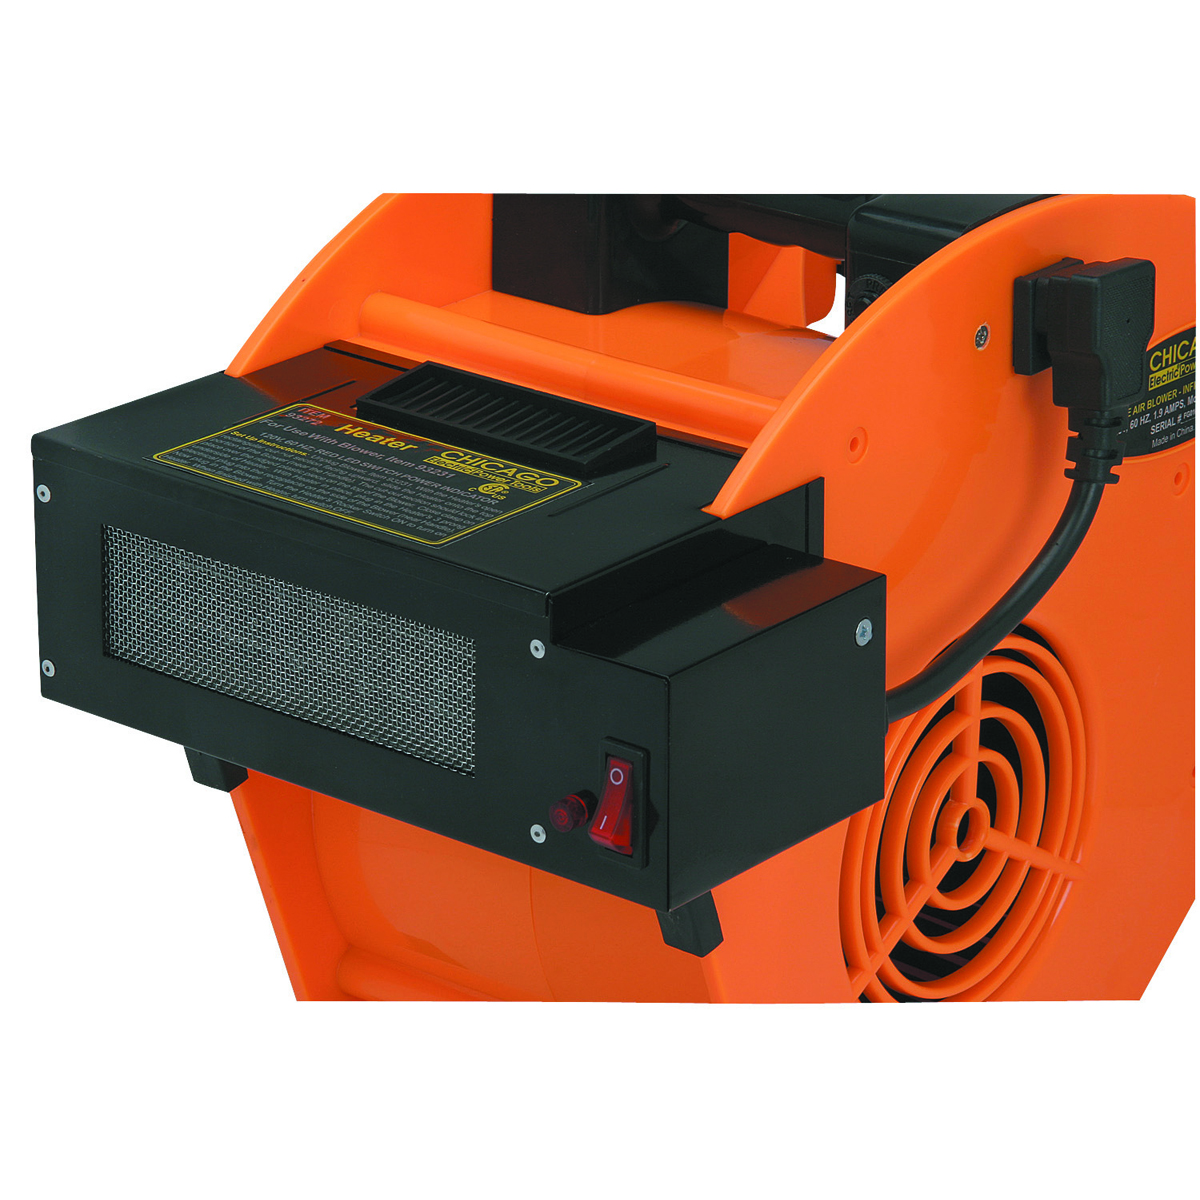 Heater Blower Fan : Heater attachment for portable blower